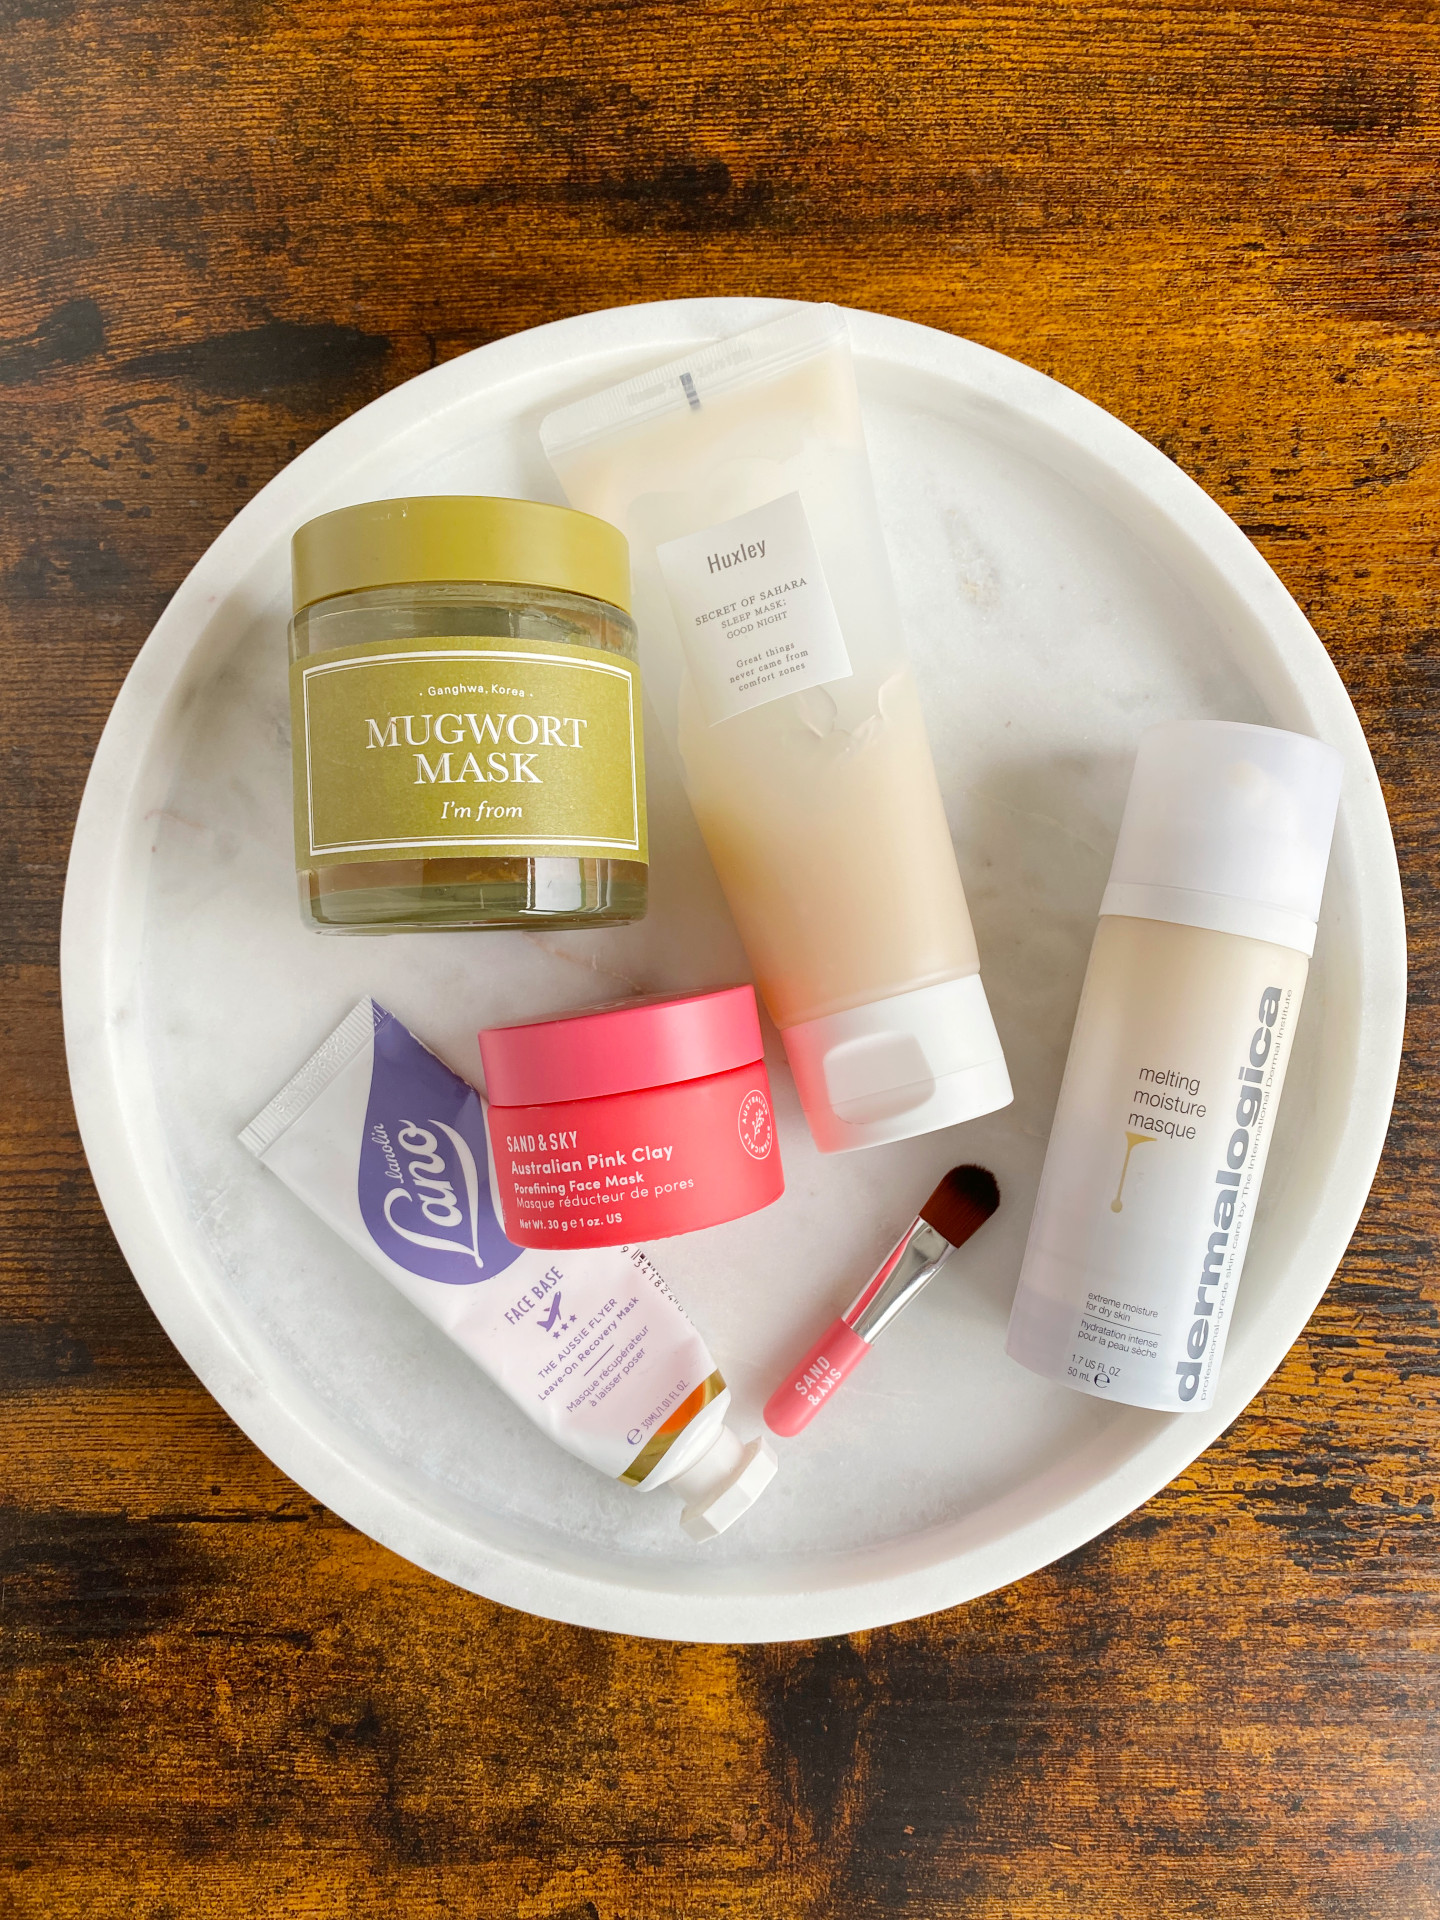 five facemasks review lanolips dermalogica sand&sky i'm from huxley